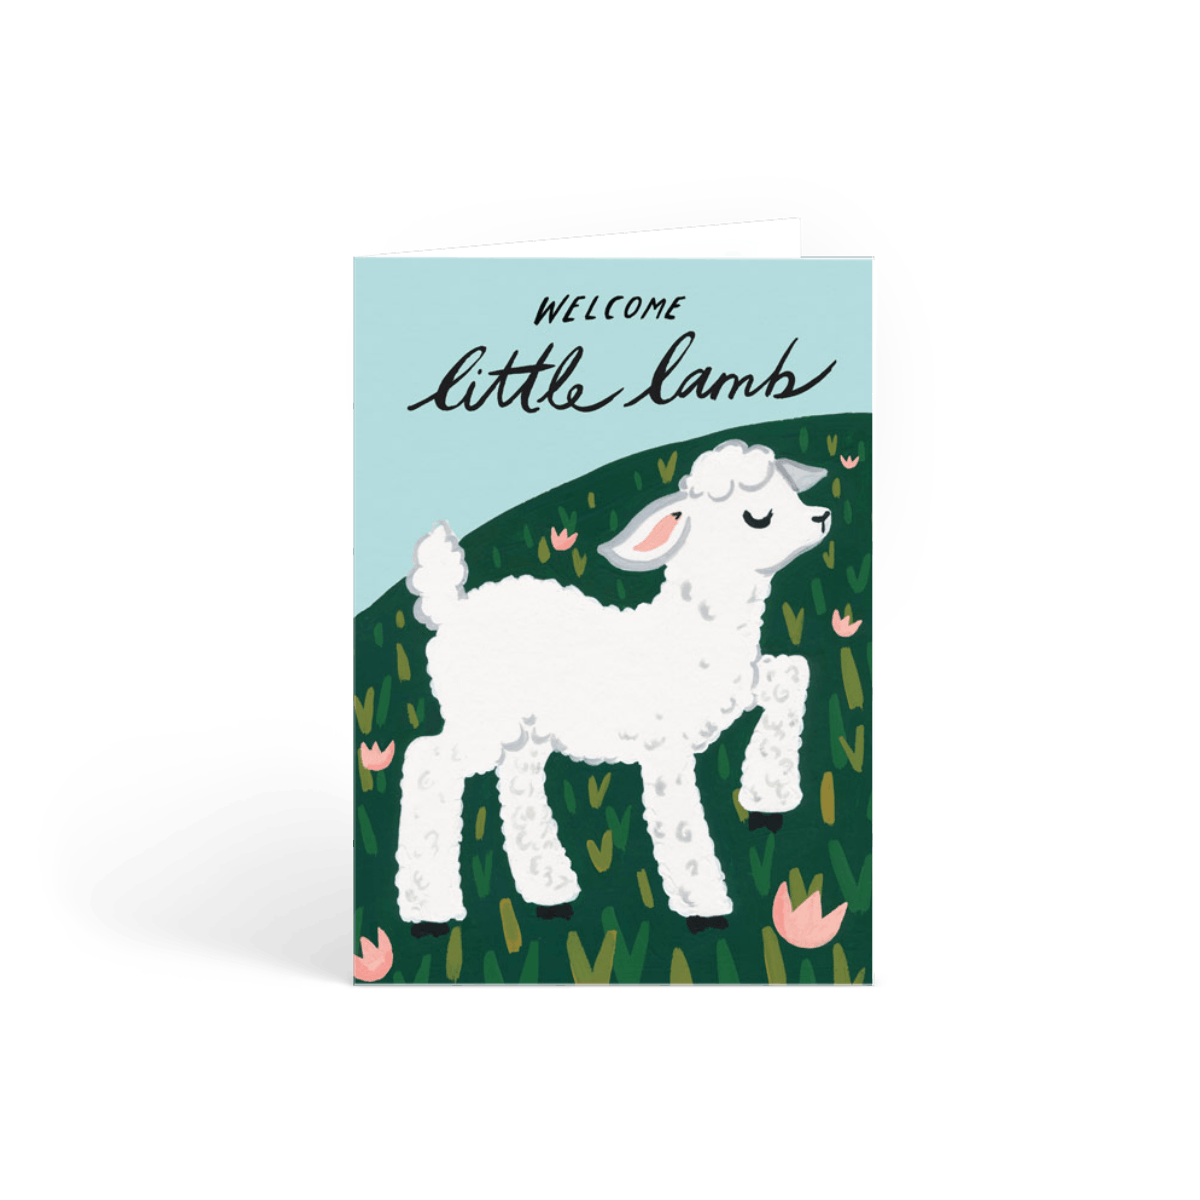 Https%3a%2f%2fwww.papier.com%2fproduct image%2f20158%2f2%2fwelcome little lamb 5161 front 1542388611.png?ixlib=rb 1.1